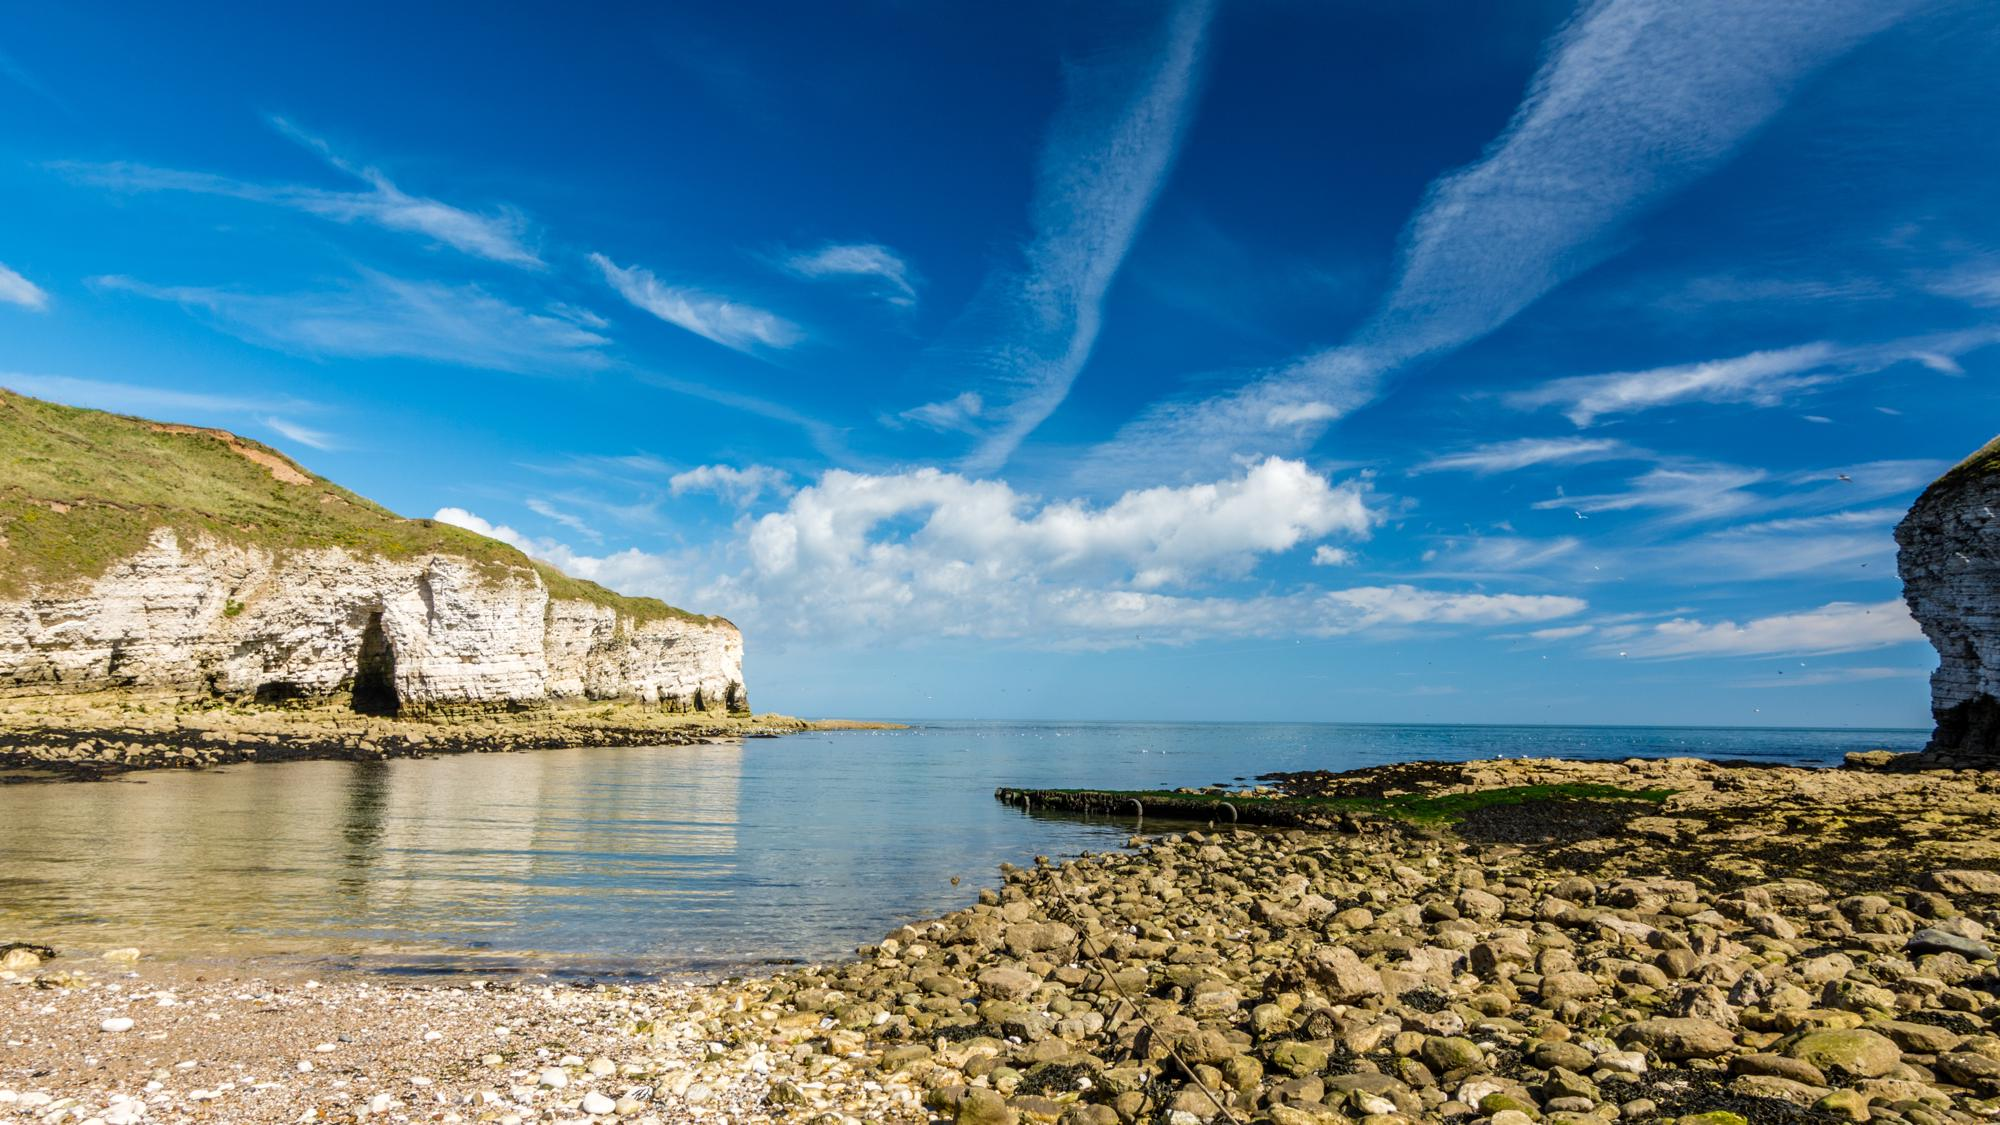 Campsites in East Riding of Yorkshire - camping in East Riding